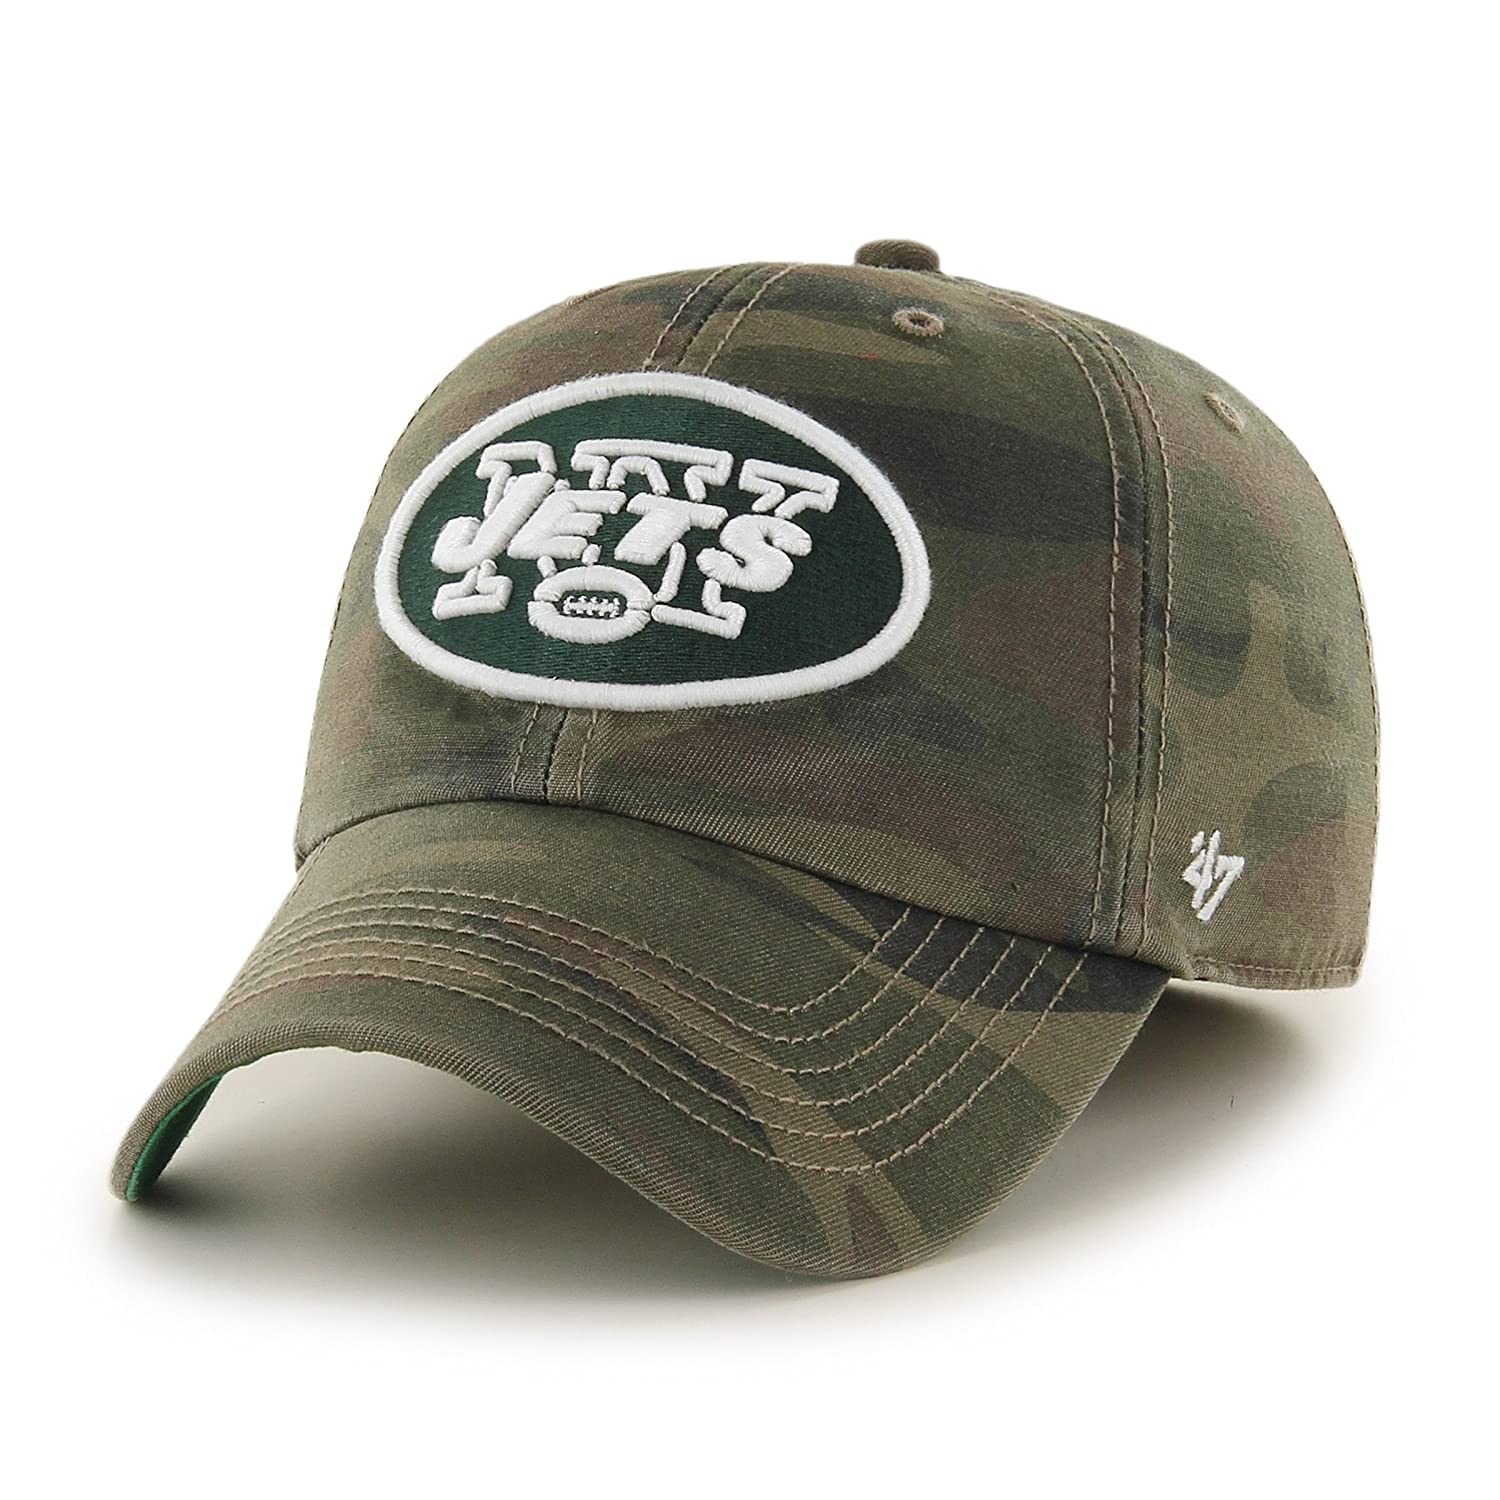 232682e554116 Amazon.com    47 NFL Harlan Franchise Fitted Hat   Sports   Outdoors